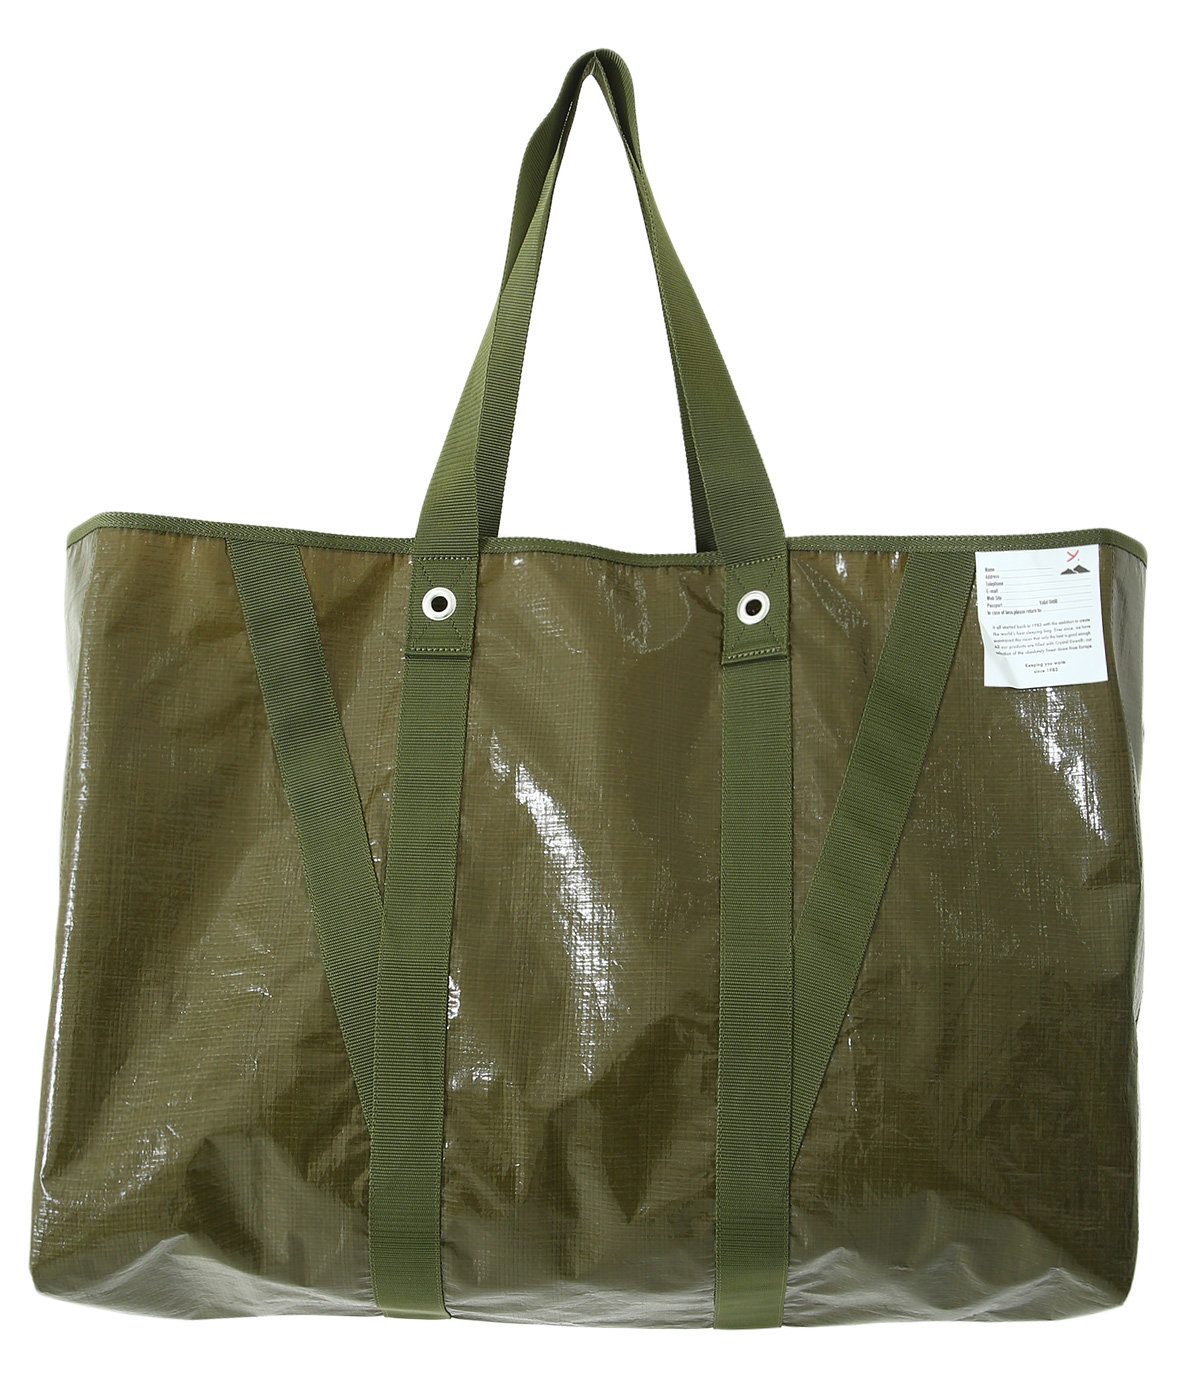 Y PILLAR LEISURE TOTE BAGS L